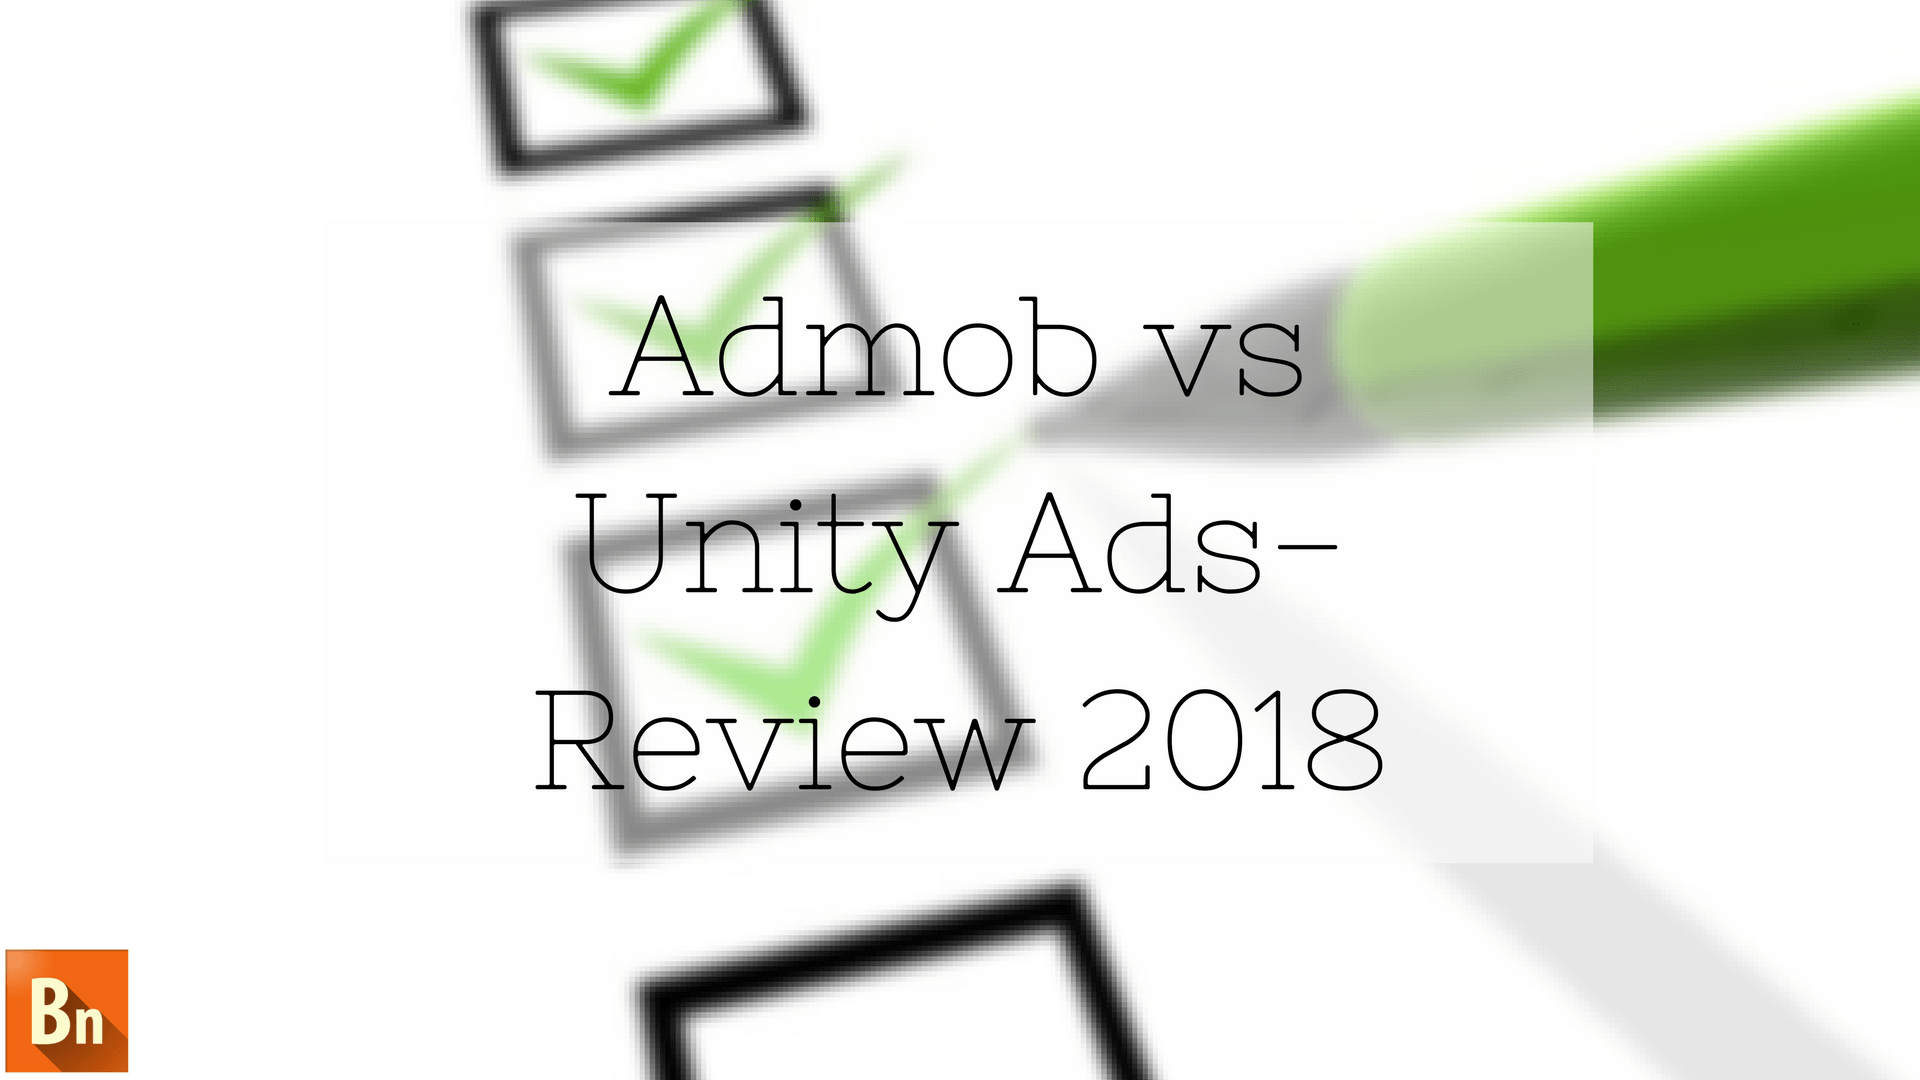 Admob vs Unity Ads- Review 2019